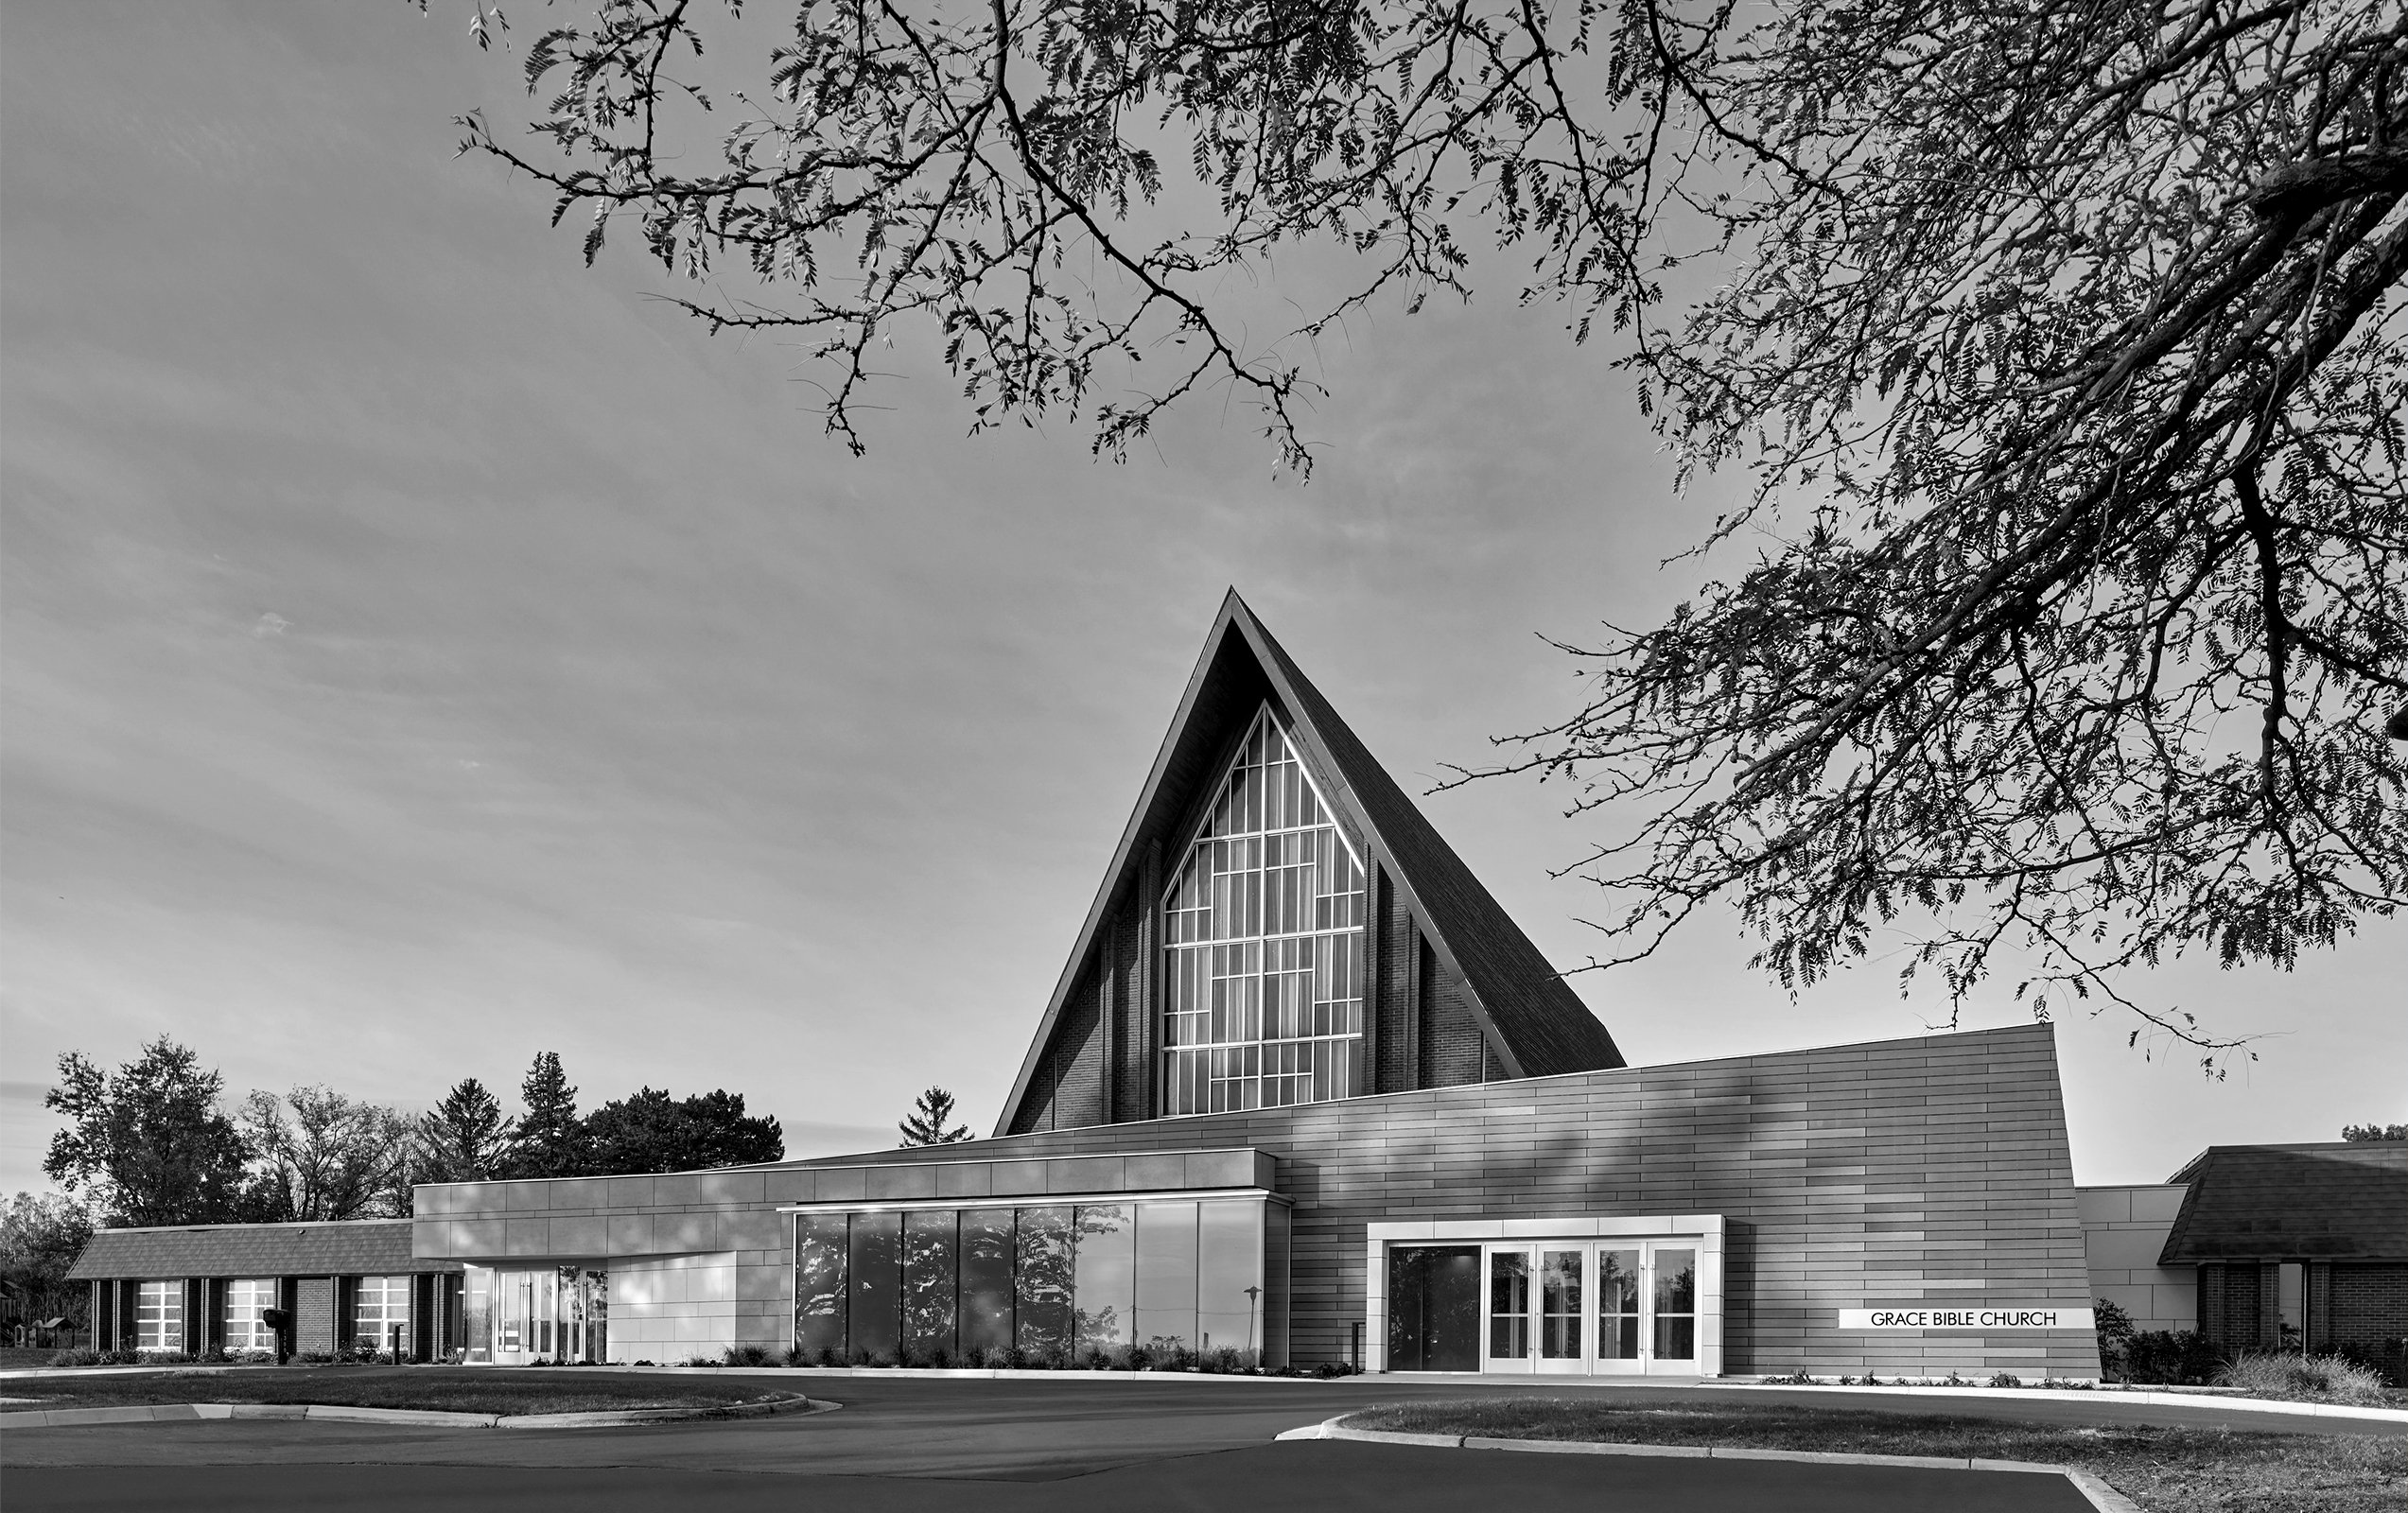 Grace Bible Church Project in Ann Arbor Michigan at Sunset black and white Architecture and Interior Design